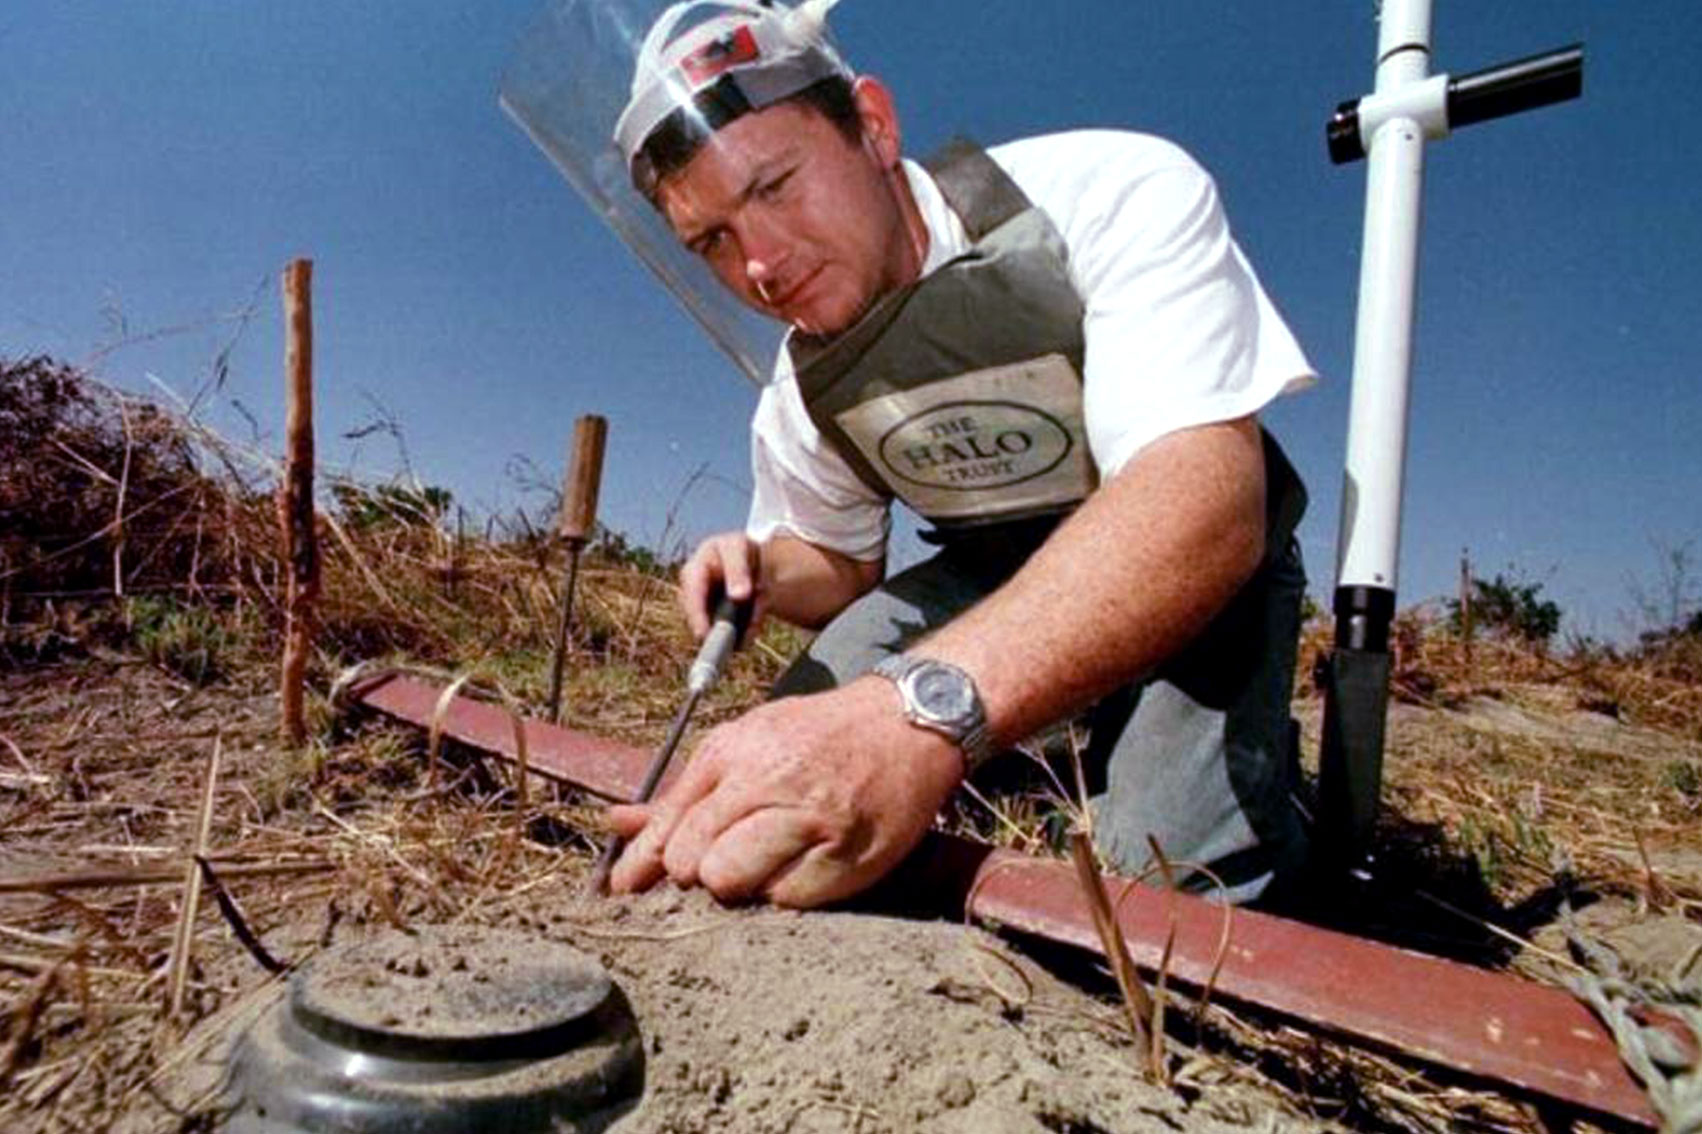 Paul Heslop is on his knees working on deactivating a mine.